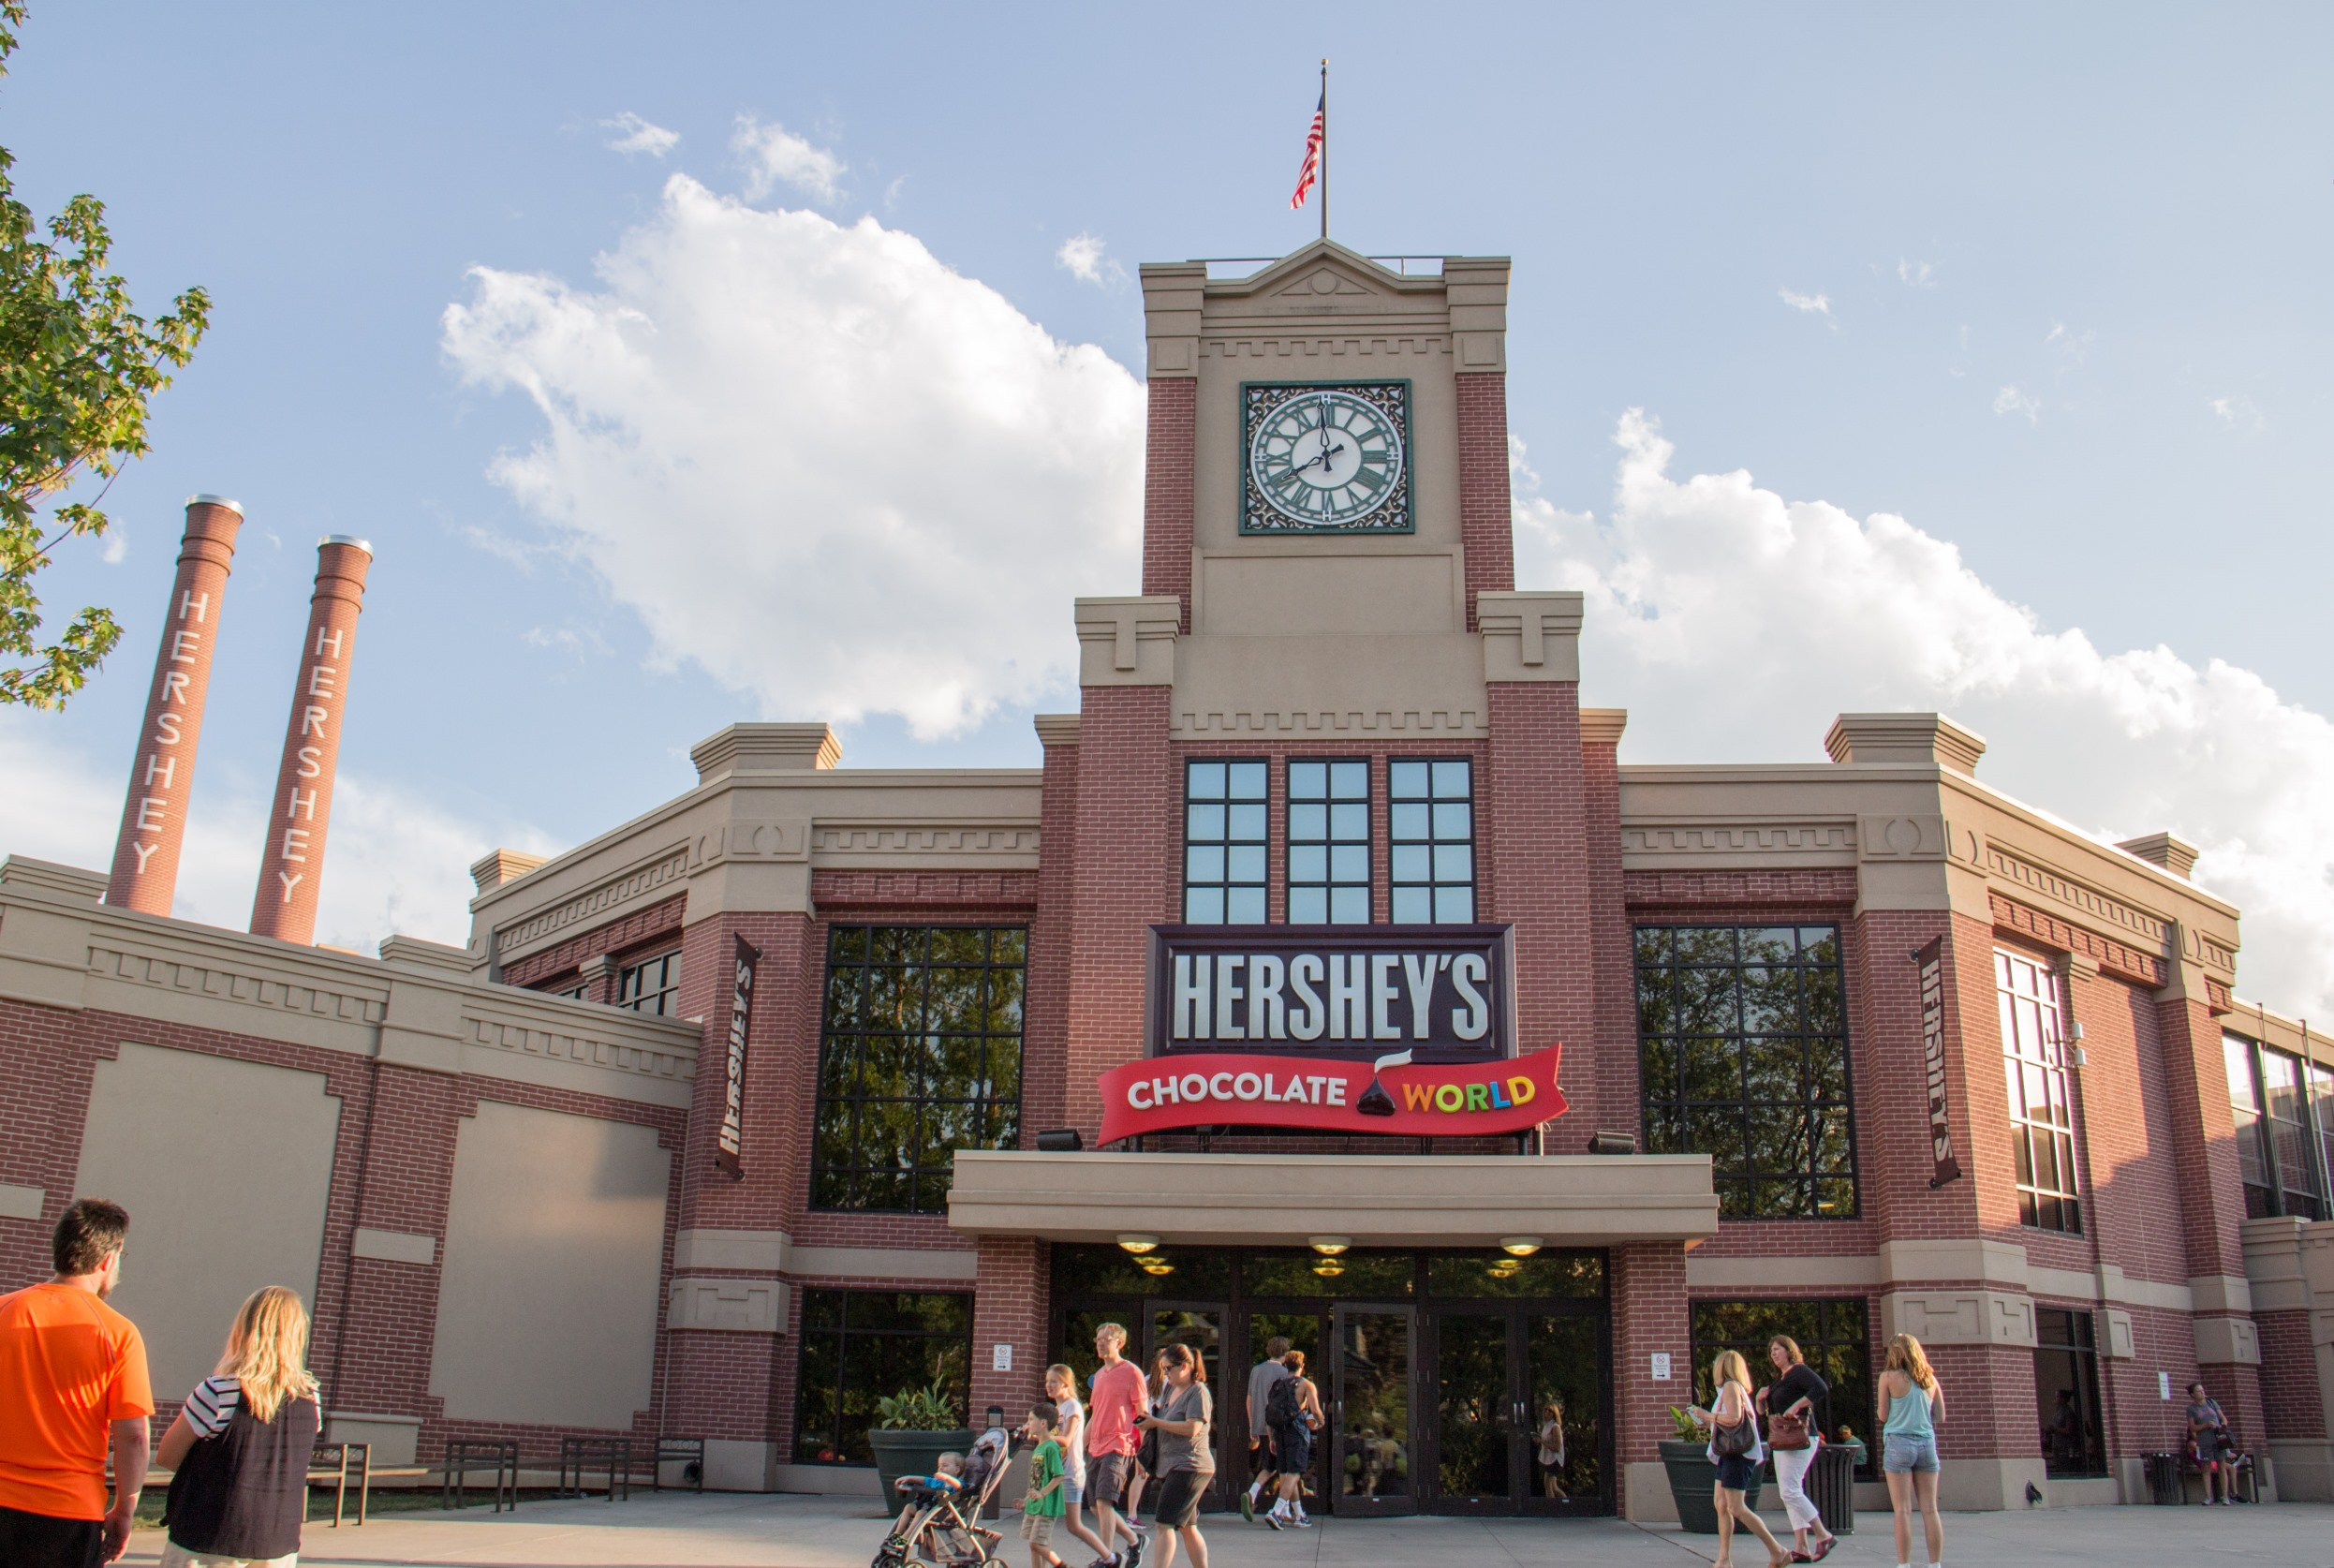 Hershey's Chocolate World: Chocolate Fun 5 Ways - Midwest Wanderer